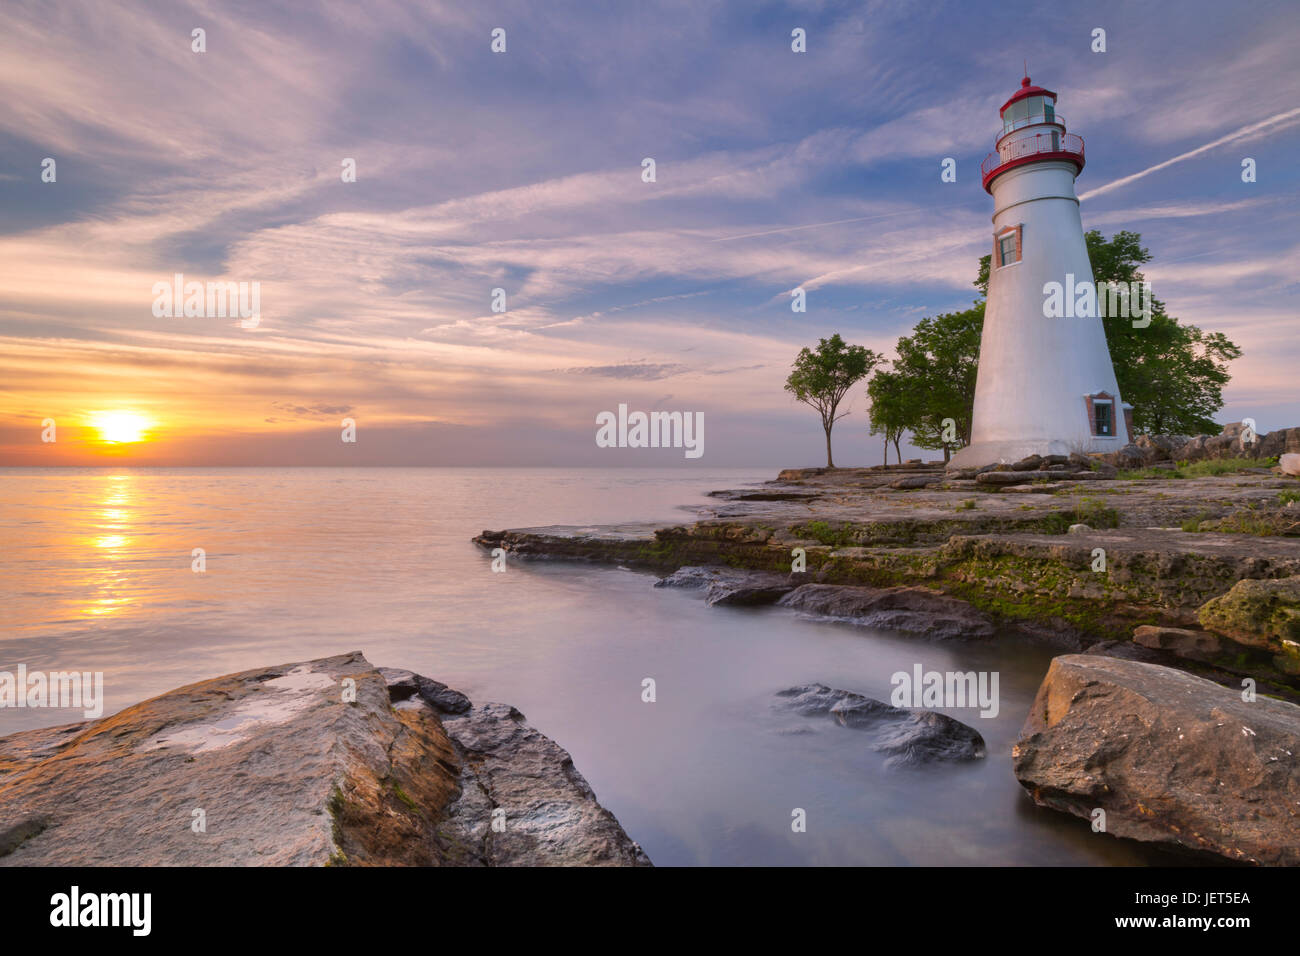 The Marblehead Lighthouse on the edge of Lake Erie in Ohio, USA. Photographed at sunrise. - Stock Image